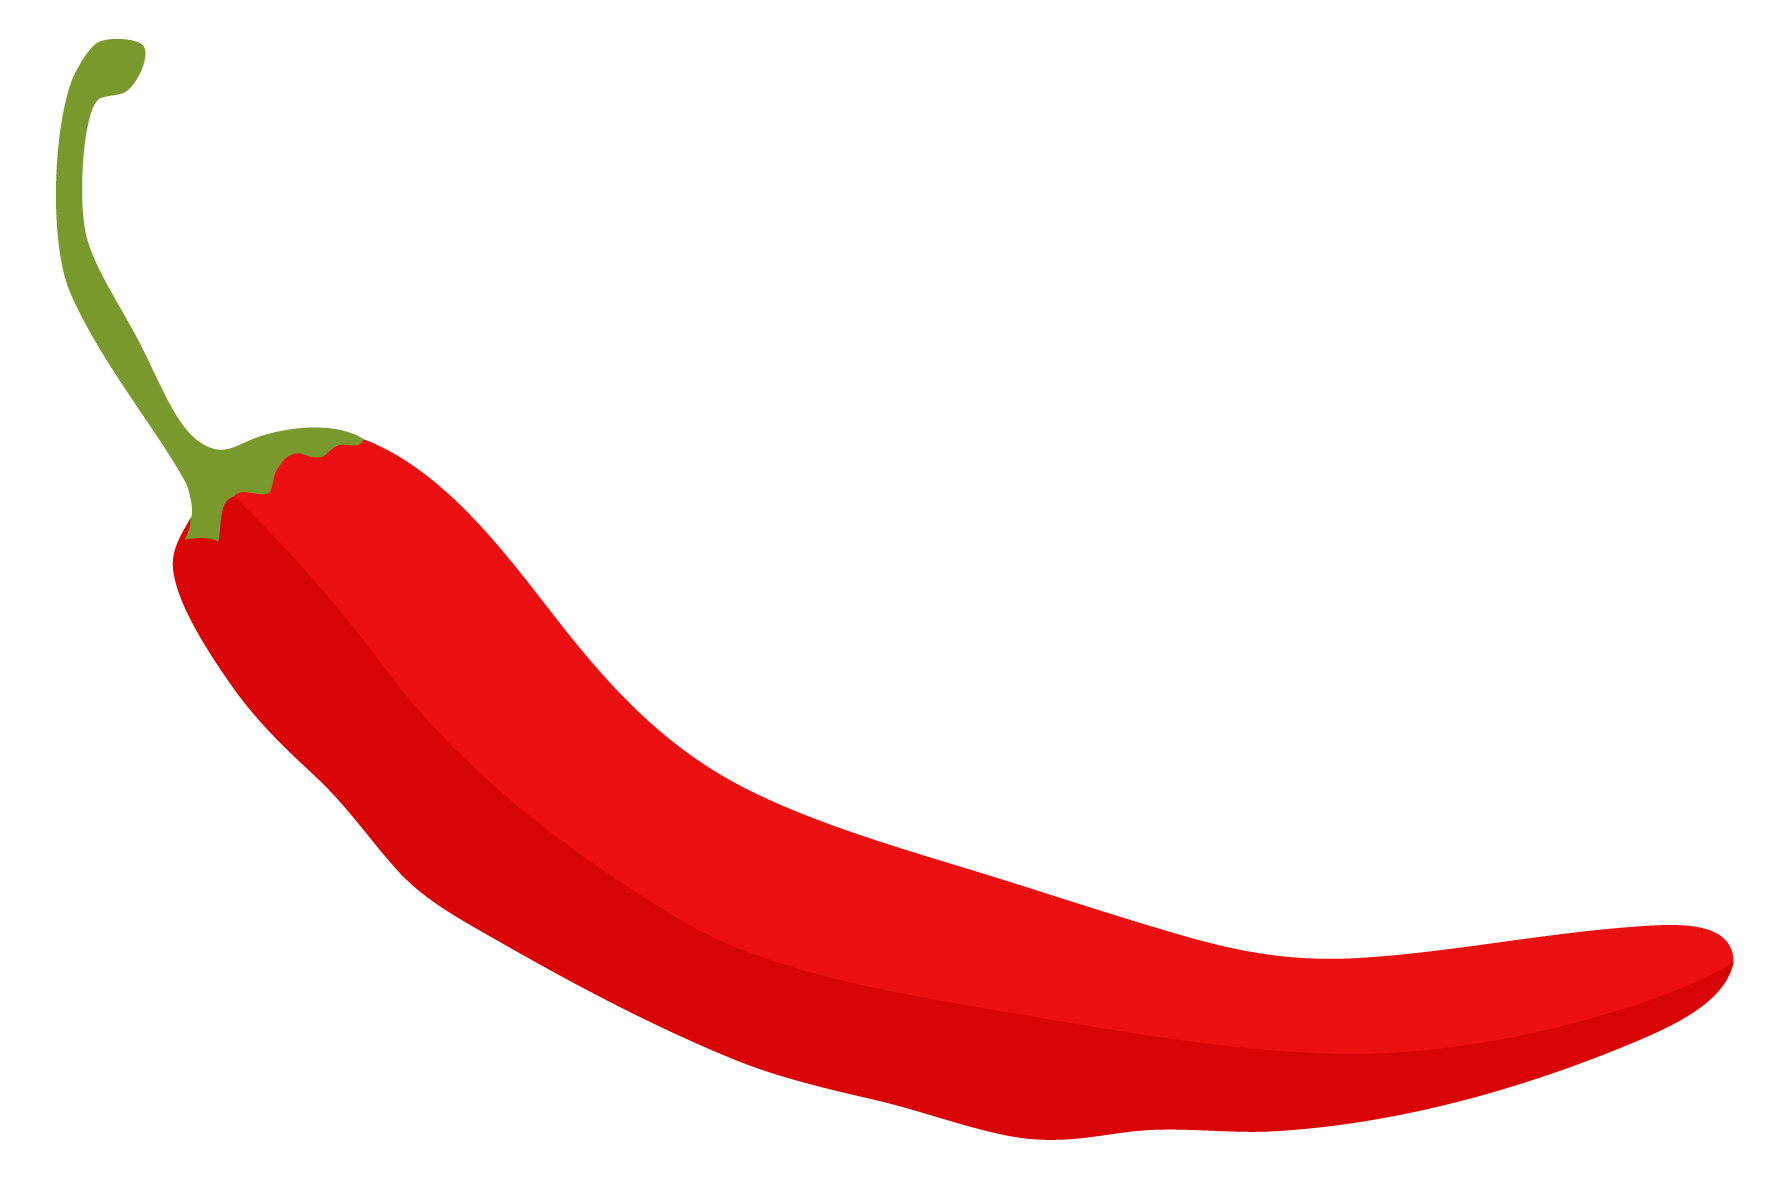 Chili pepper clipart #15